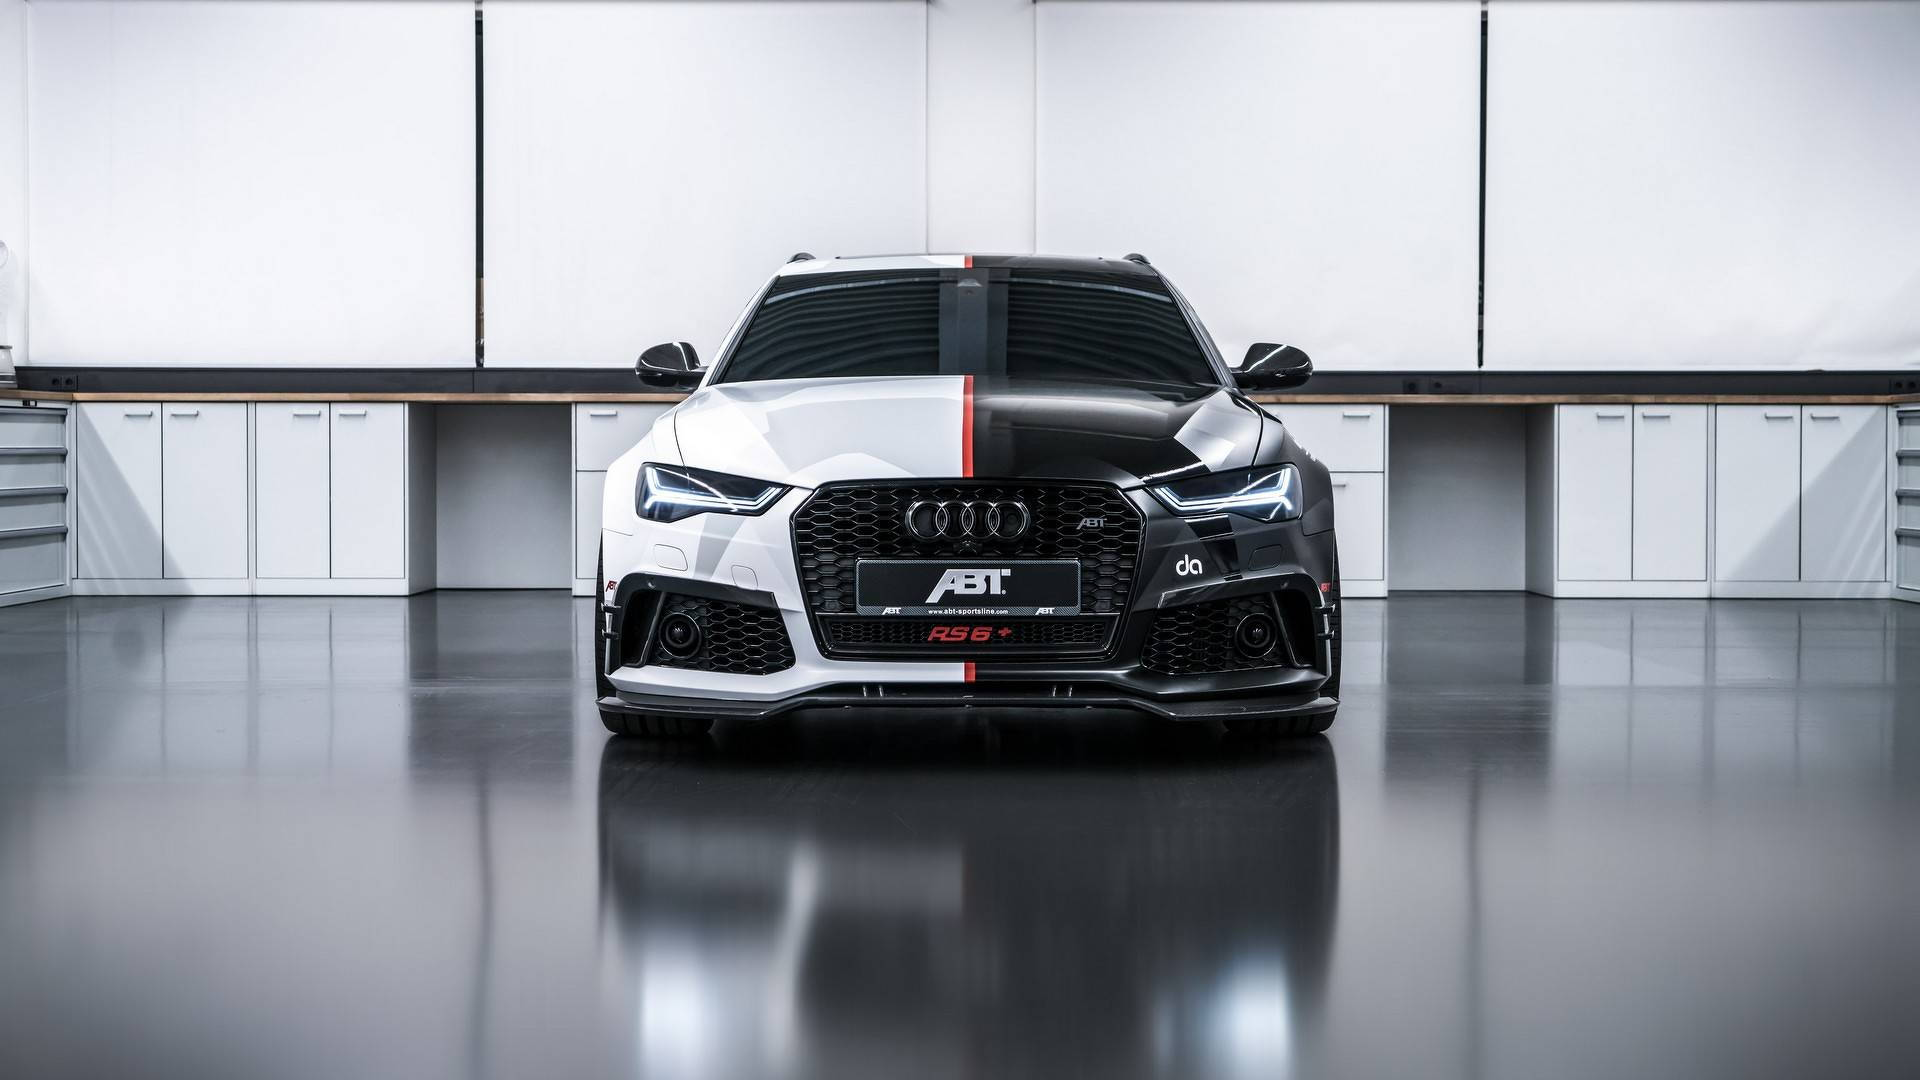 Jon Olsson's Project Phoenix Audi RS6+ Abt Avant